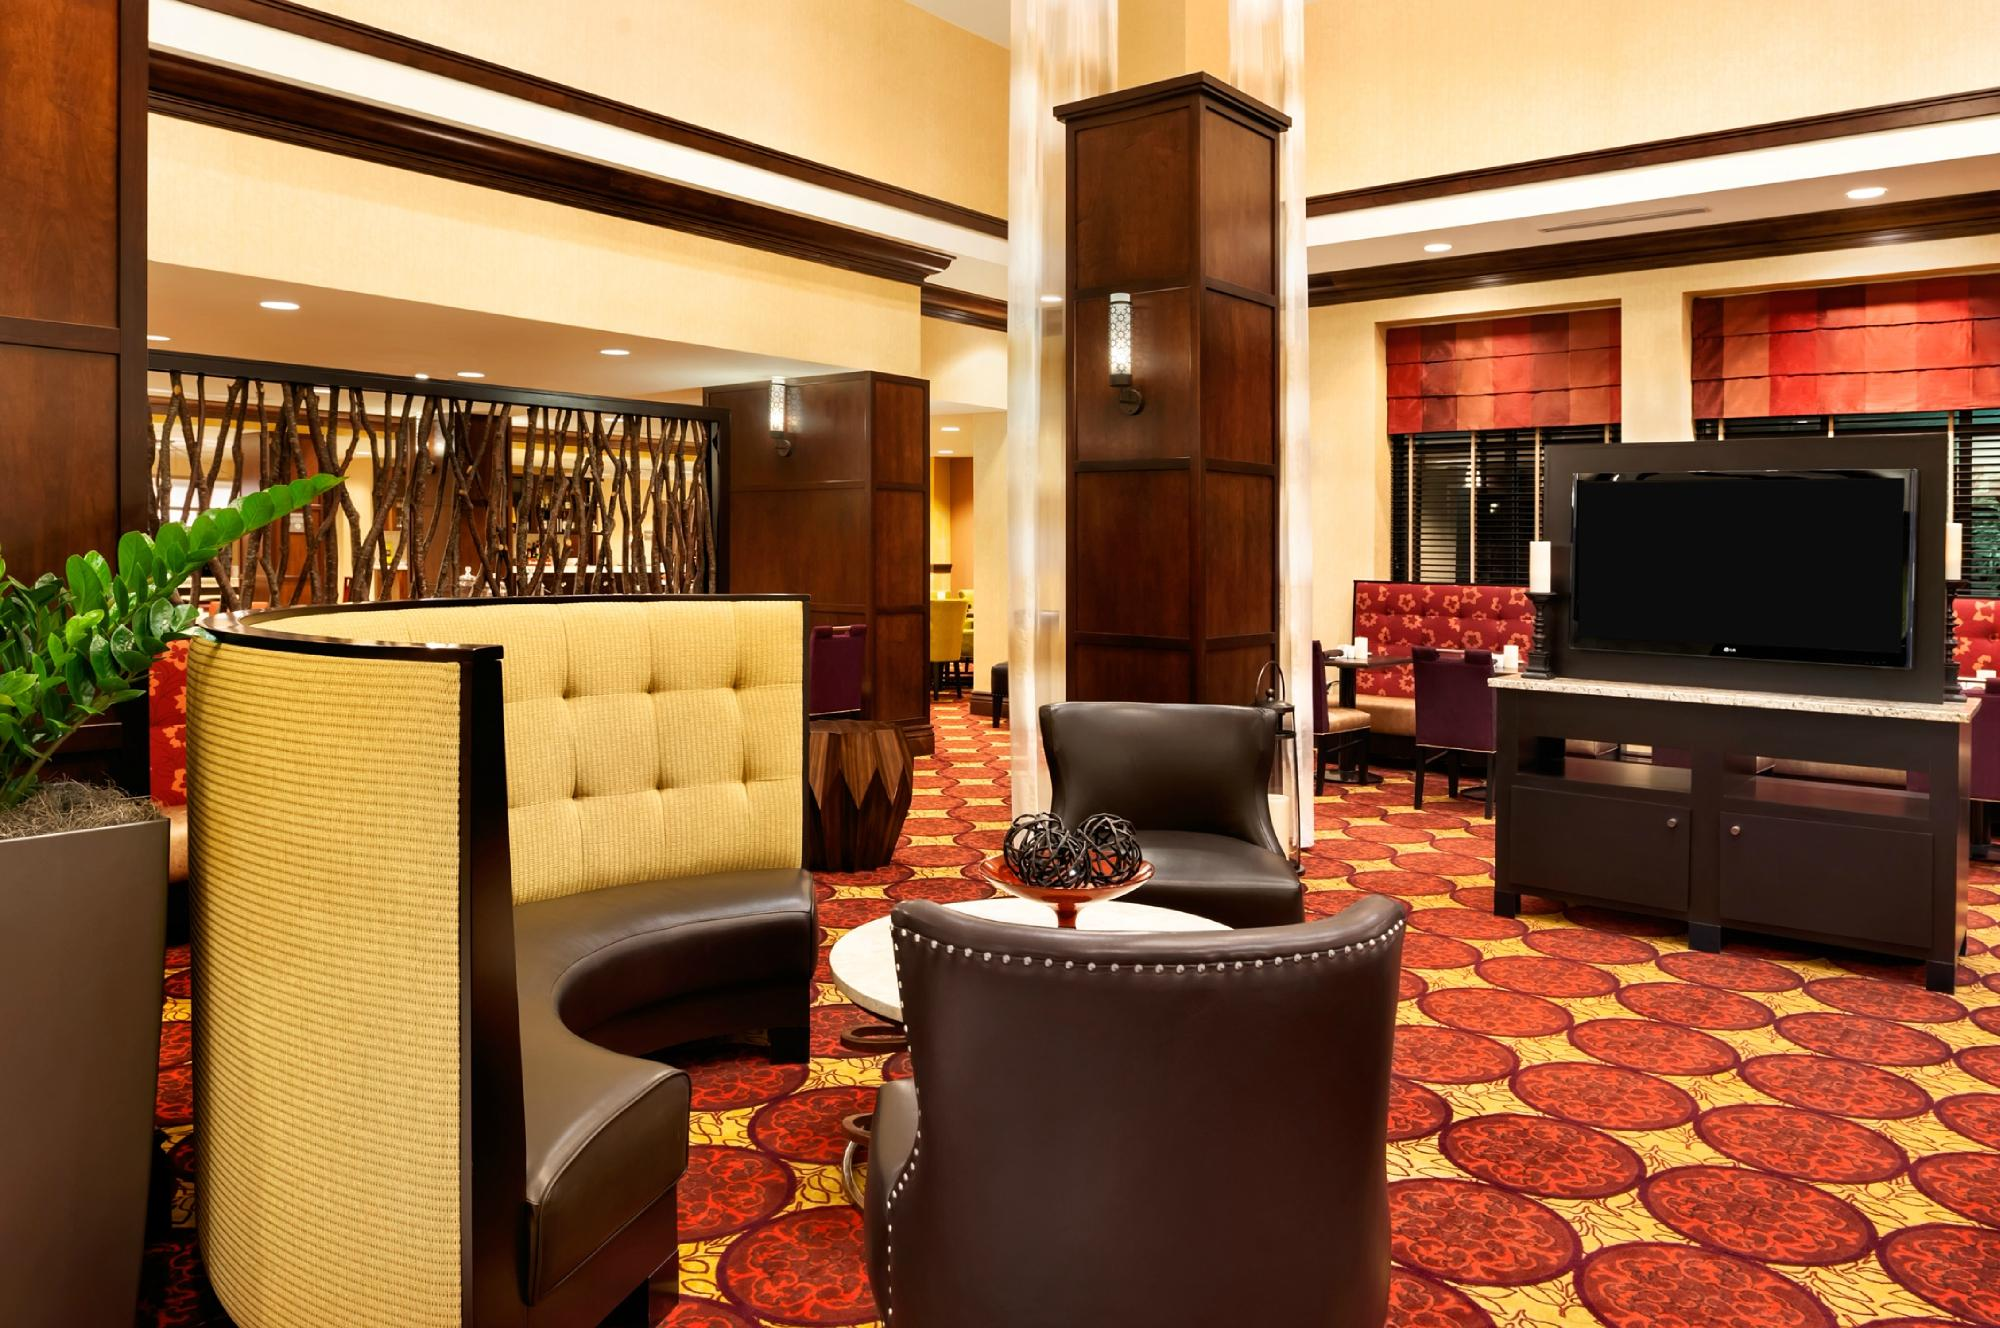 Hilton Garden Inn Shreveport Bossier City